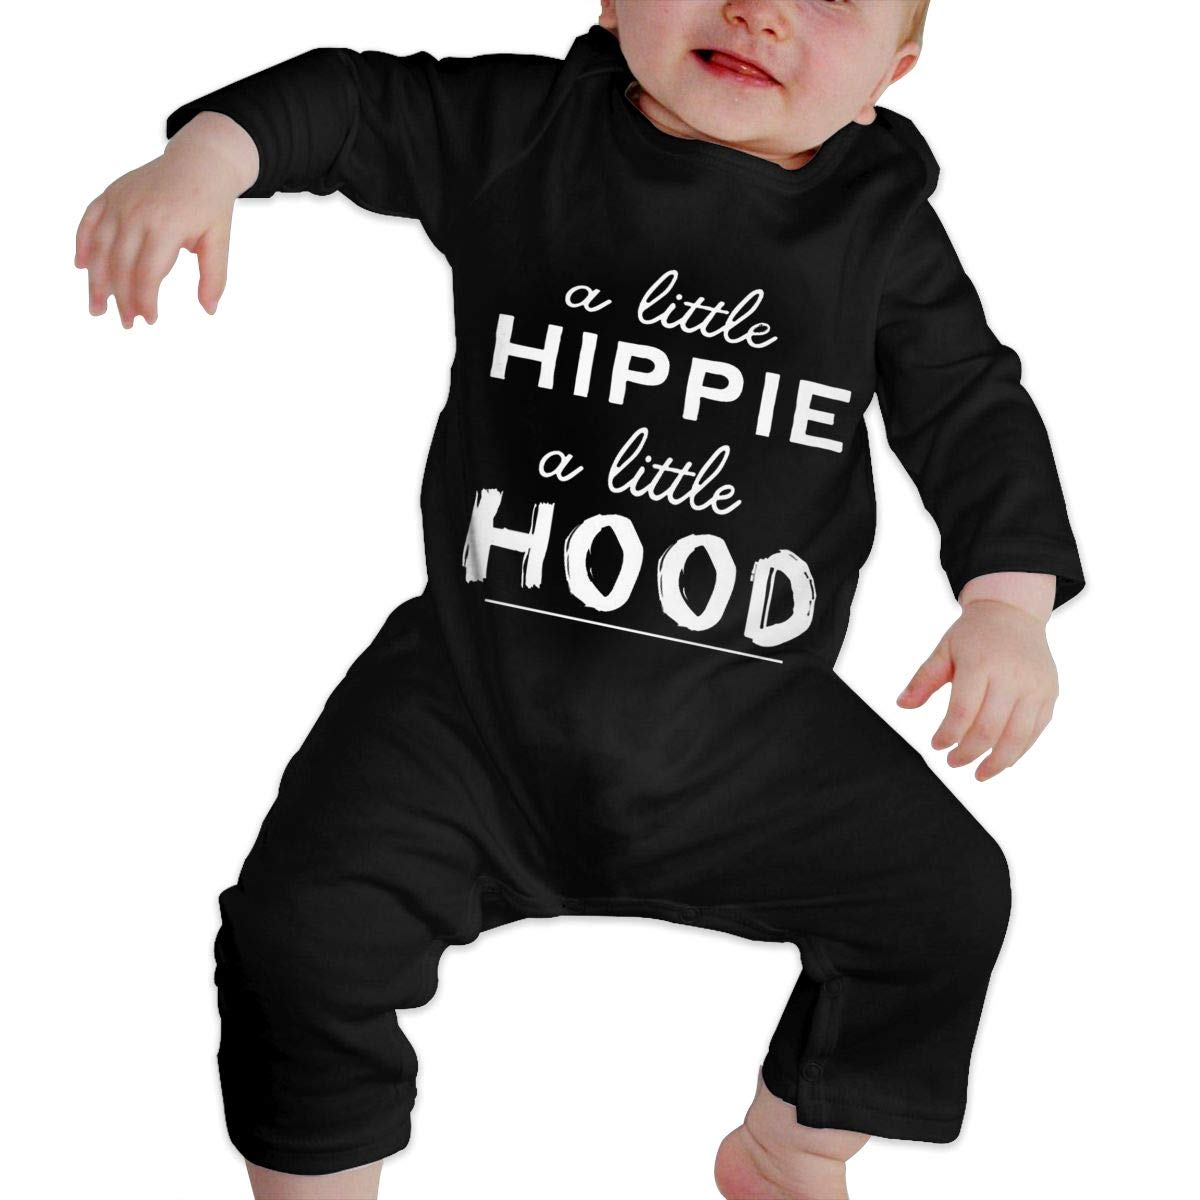 A Little Hippie A Little Hood Unisex Long Sleeve Baby Gown Baby Bodysuit Unionsuit Footed Pajamas Romper Jumpsuit